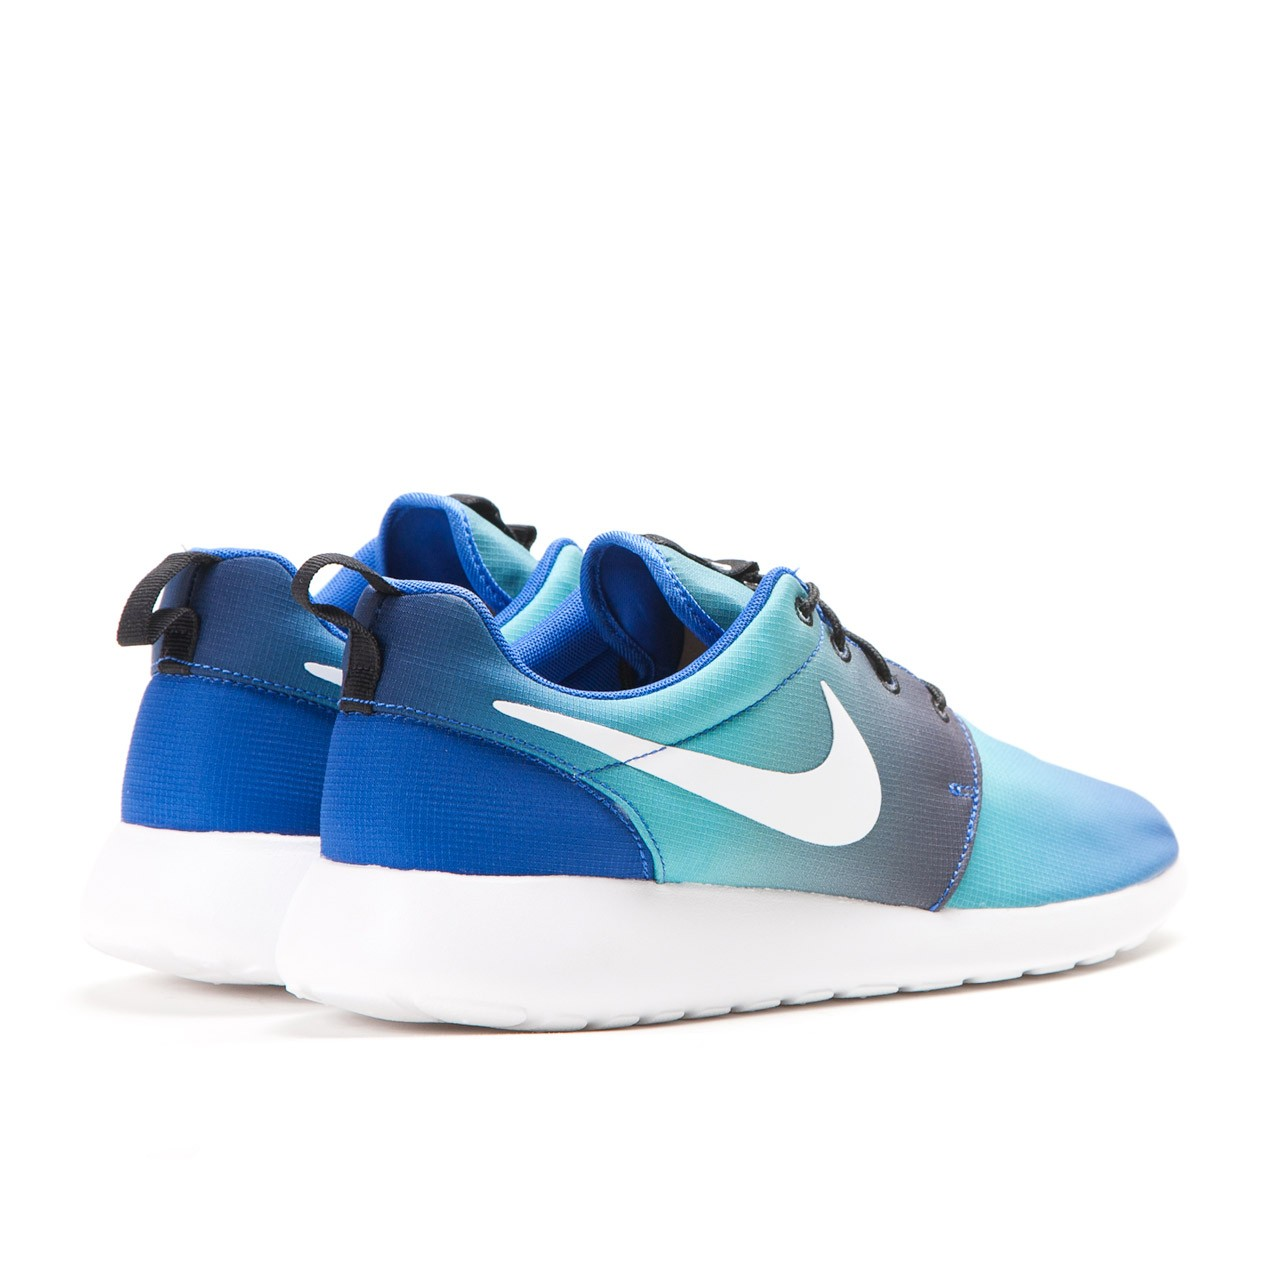 on sale a0f2e 70dc2 ... get nike roshe run print game royal white light retro a5910 a52f1 ...